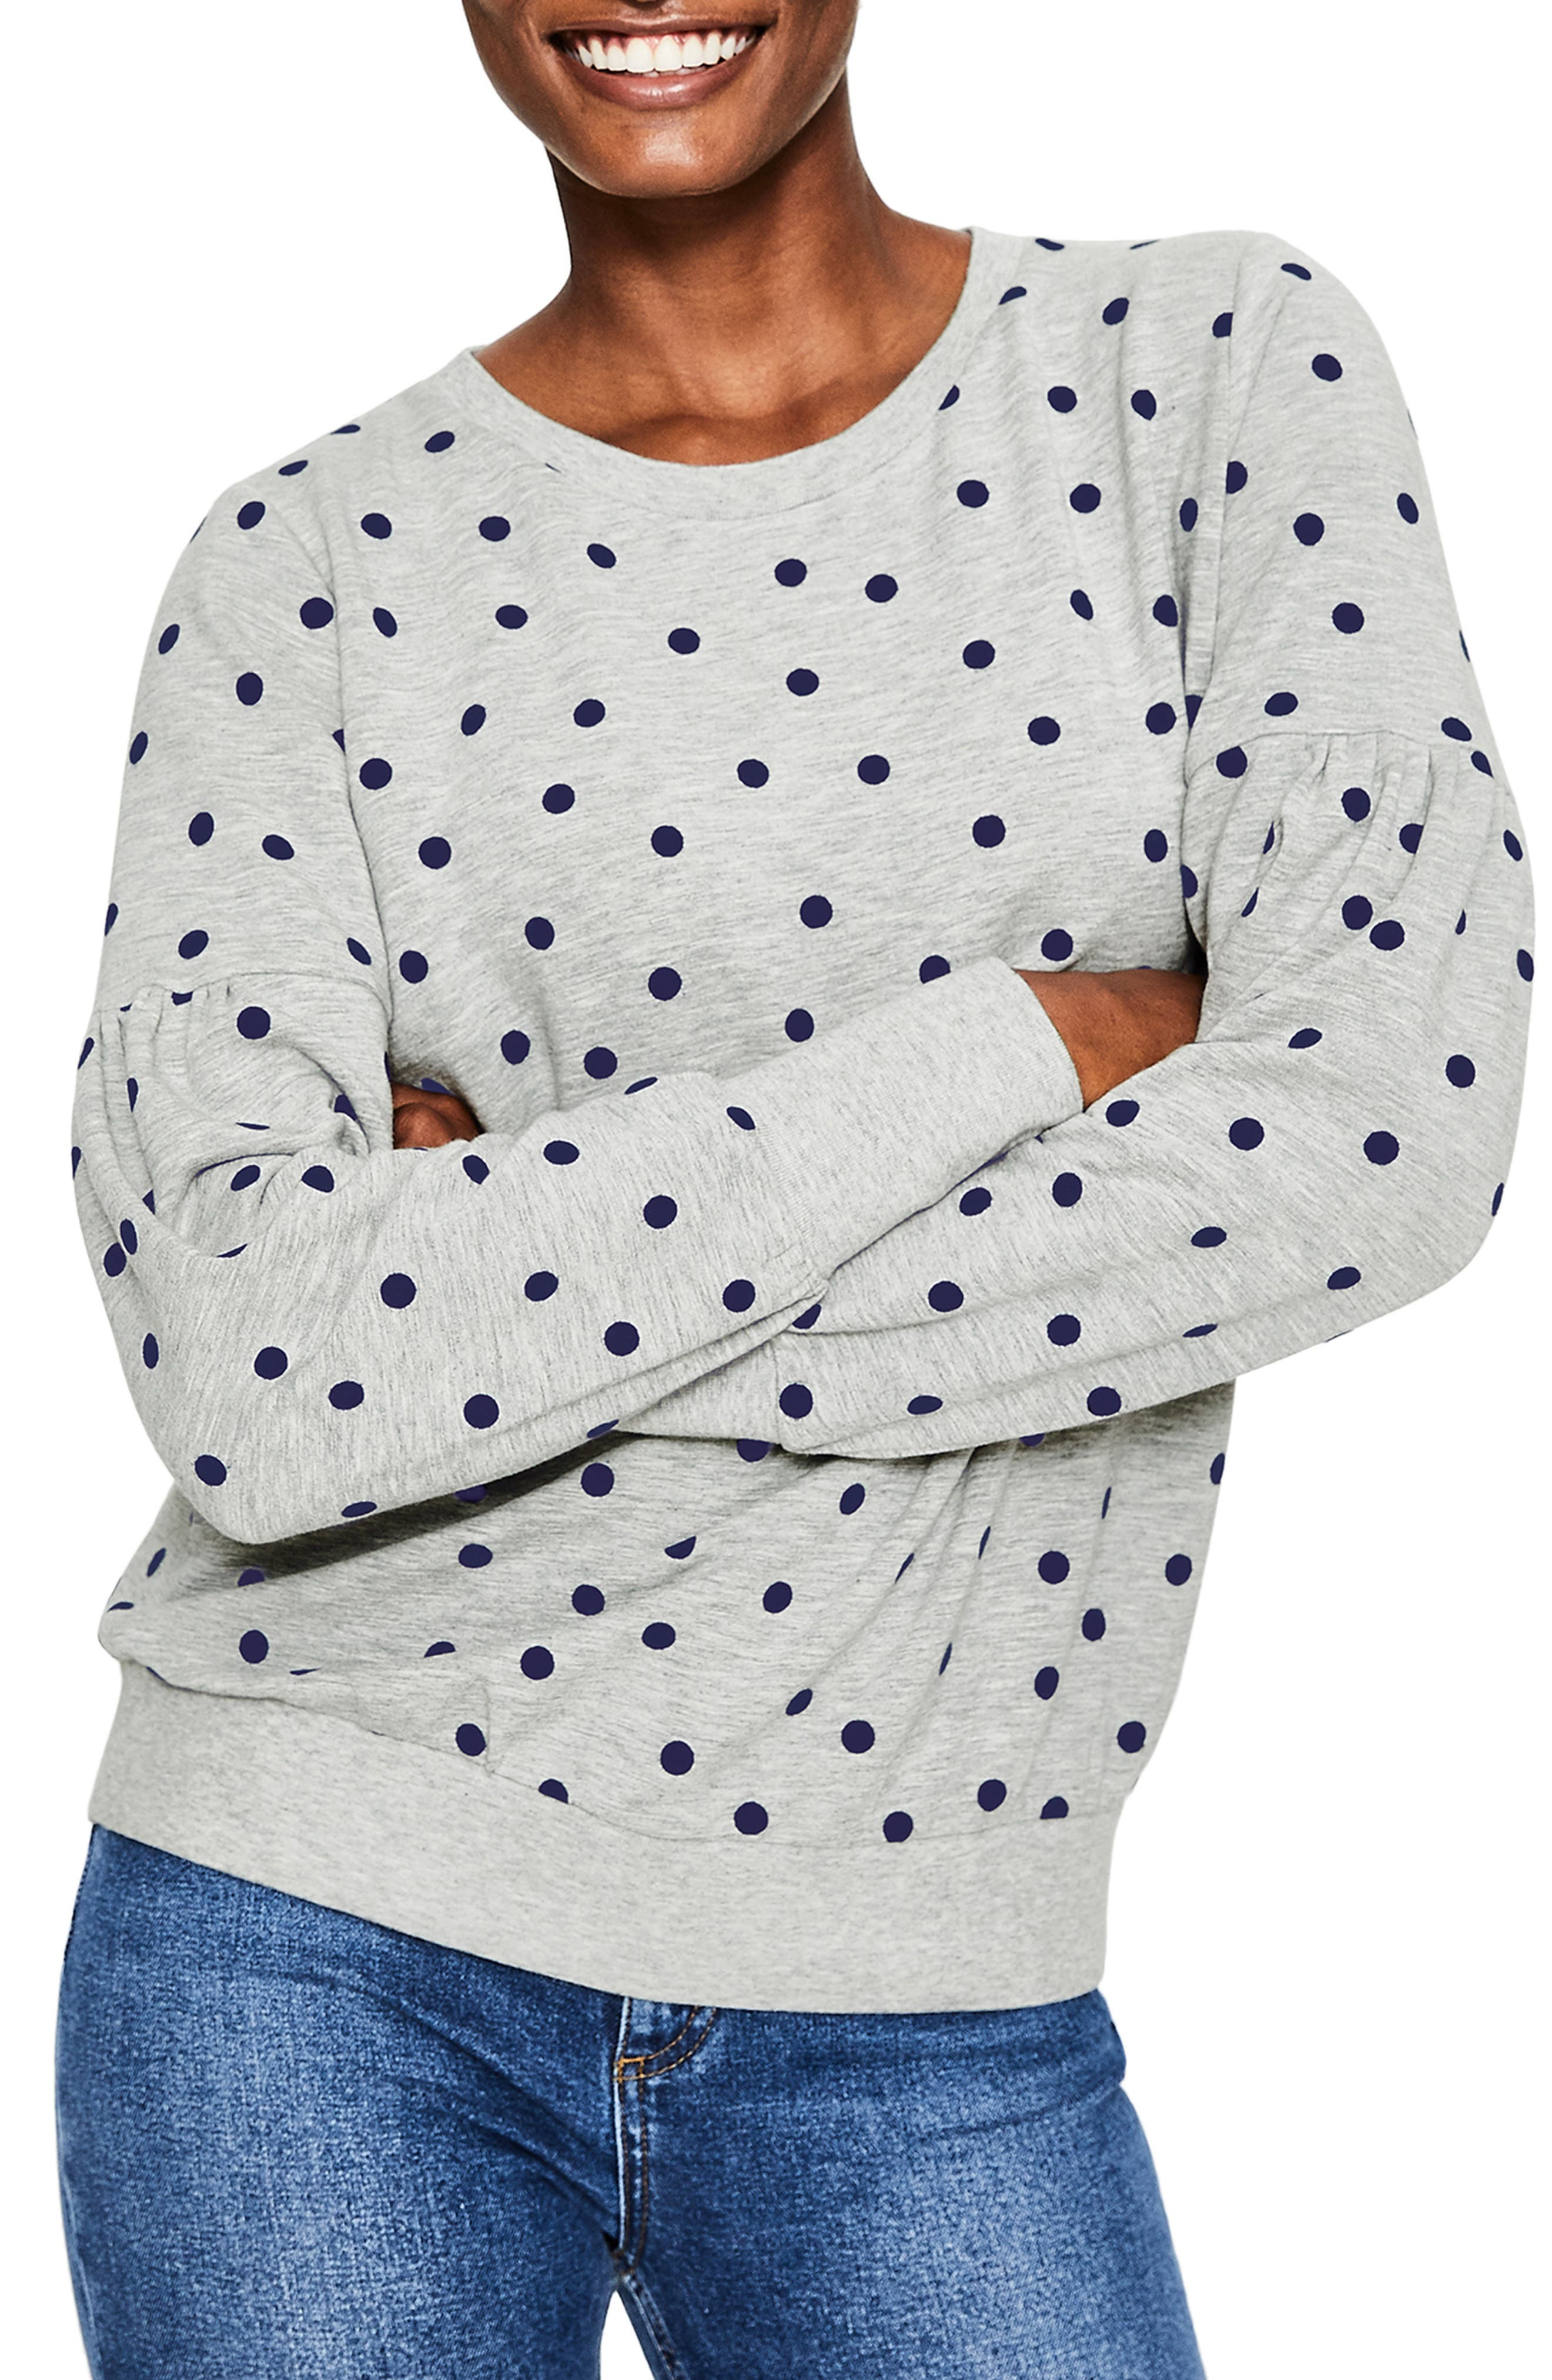 Renee Sweatshirt,                         Main,                         color, GREY MARL FLOCKED SPOT